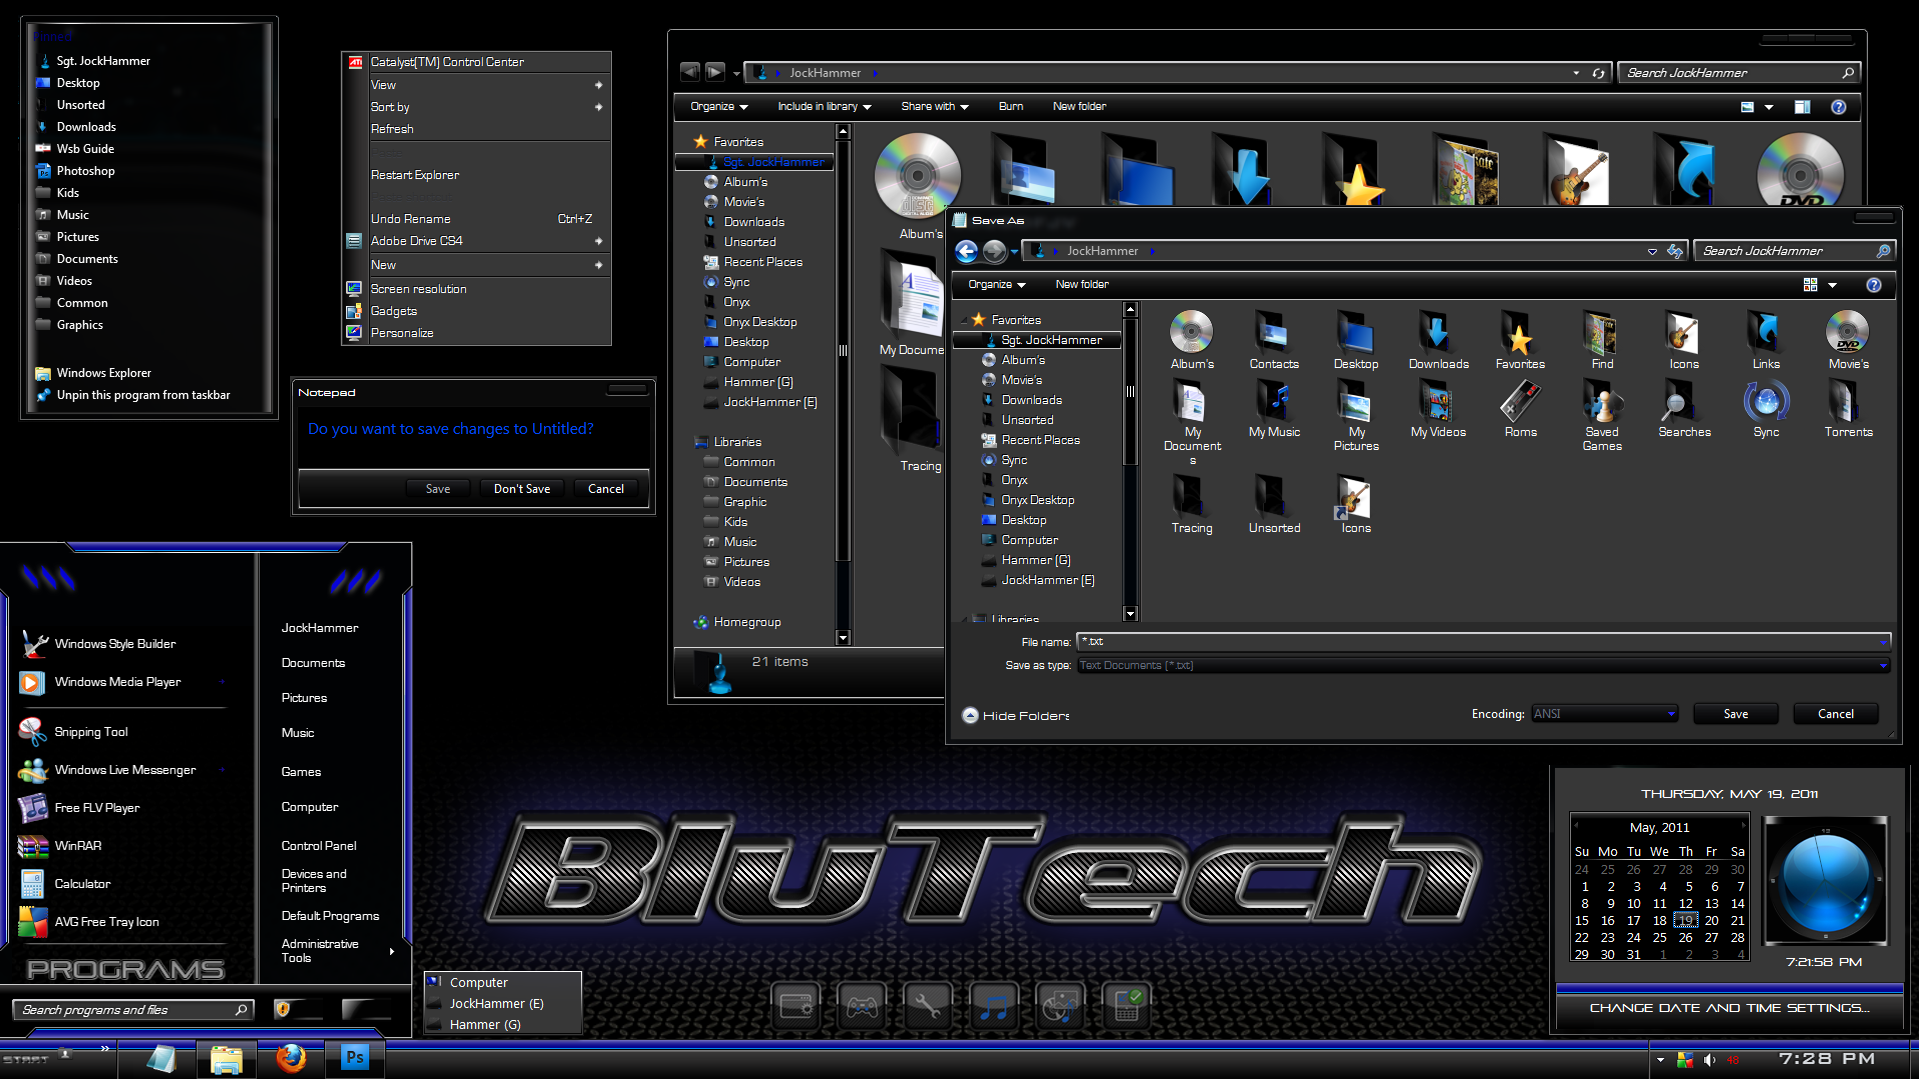 windows 7 themes full version free download